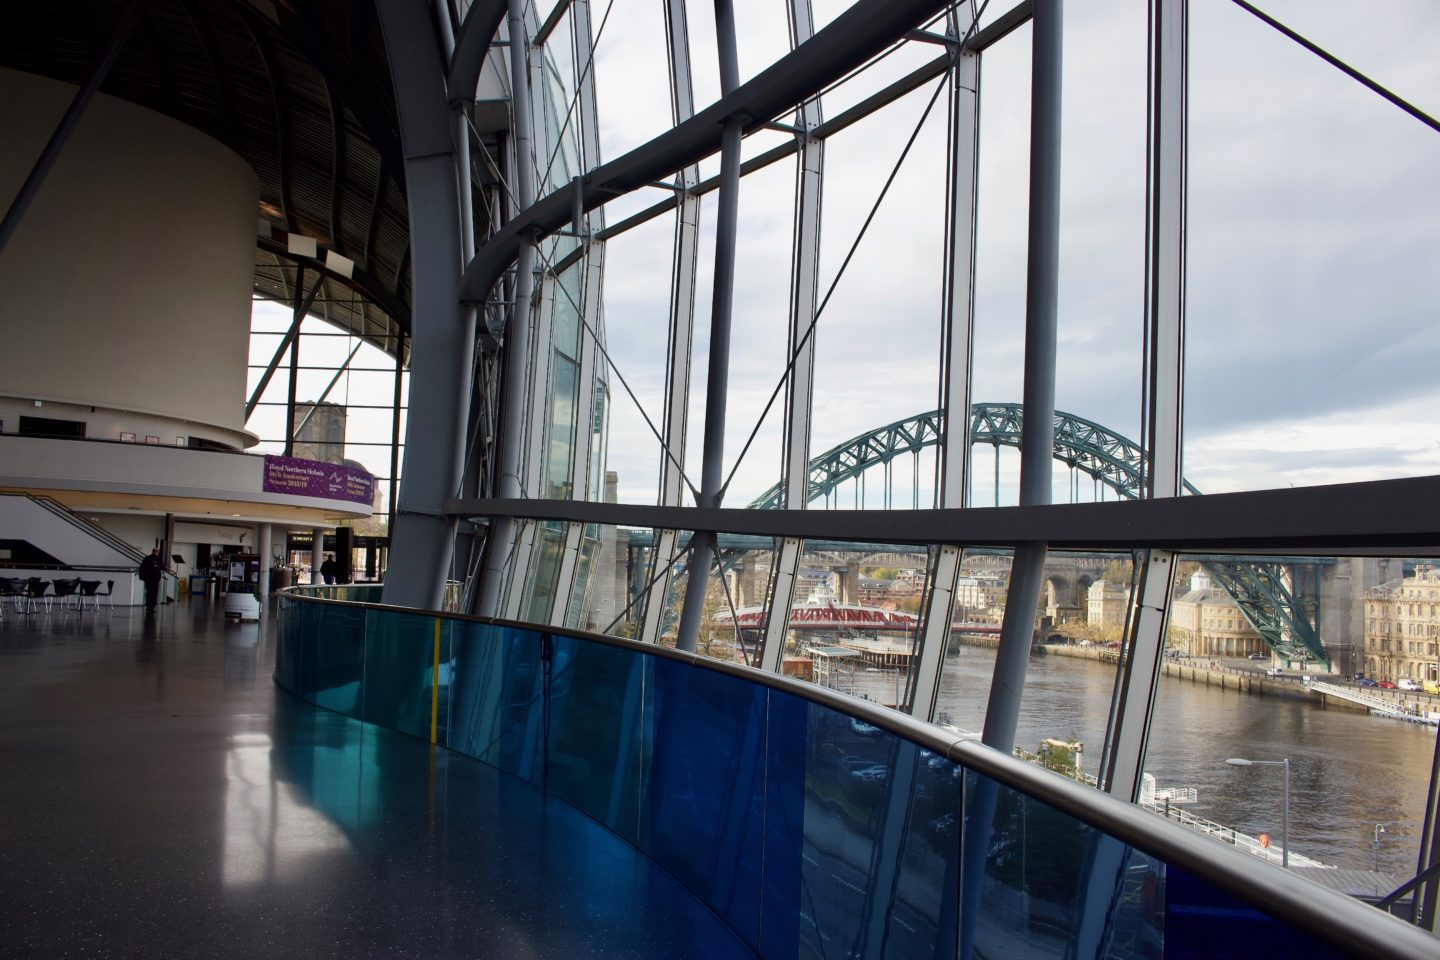 Inside Sage Gateshead with a view of the Tyne Bridge. Sage Gateshead Music Live Under Five: Mini Musicians review